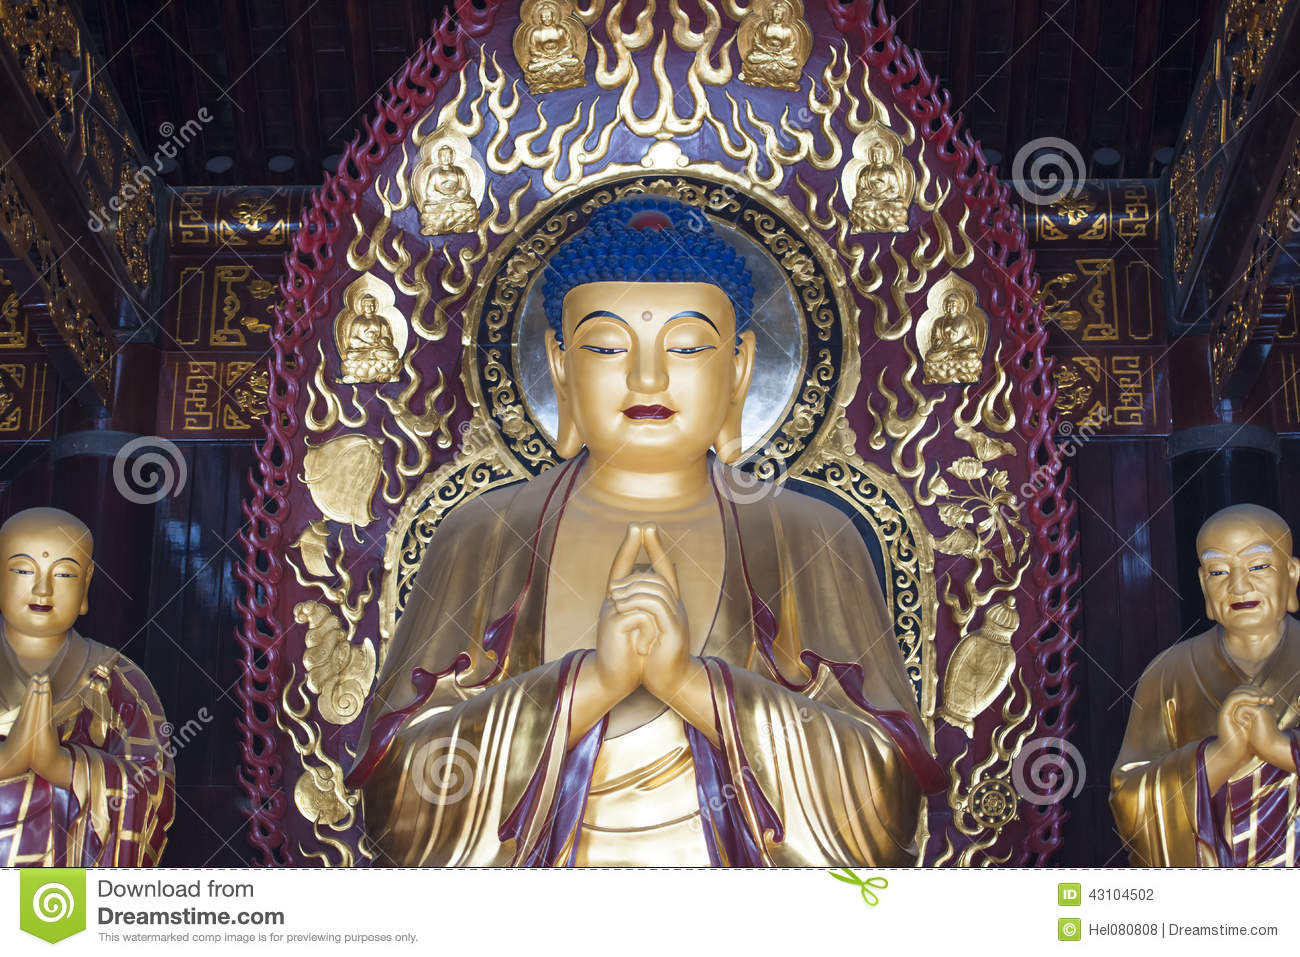 Godness in Chinese tempel